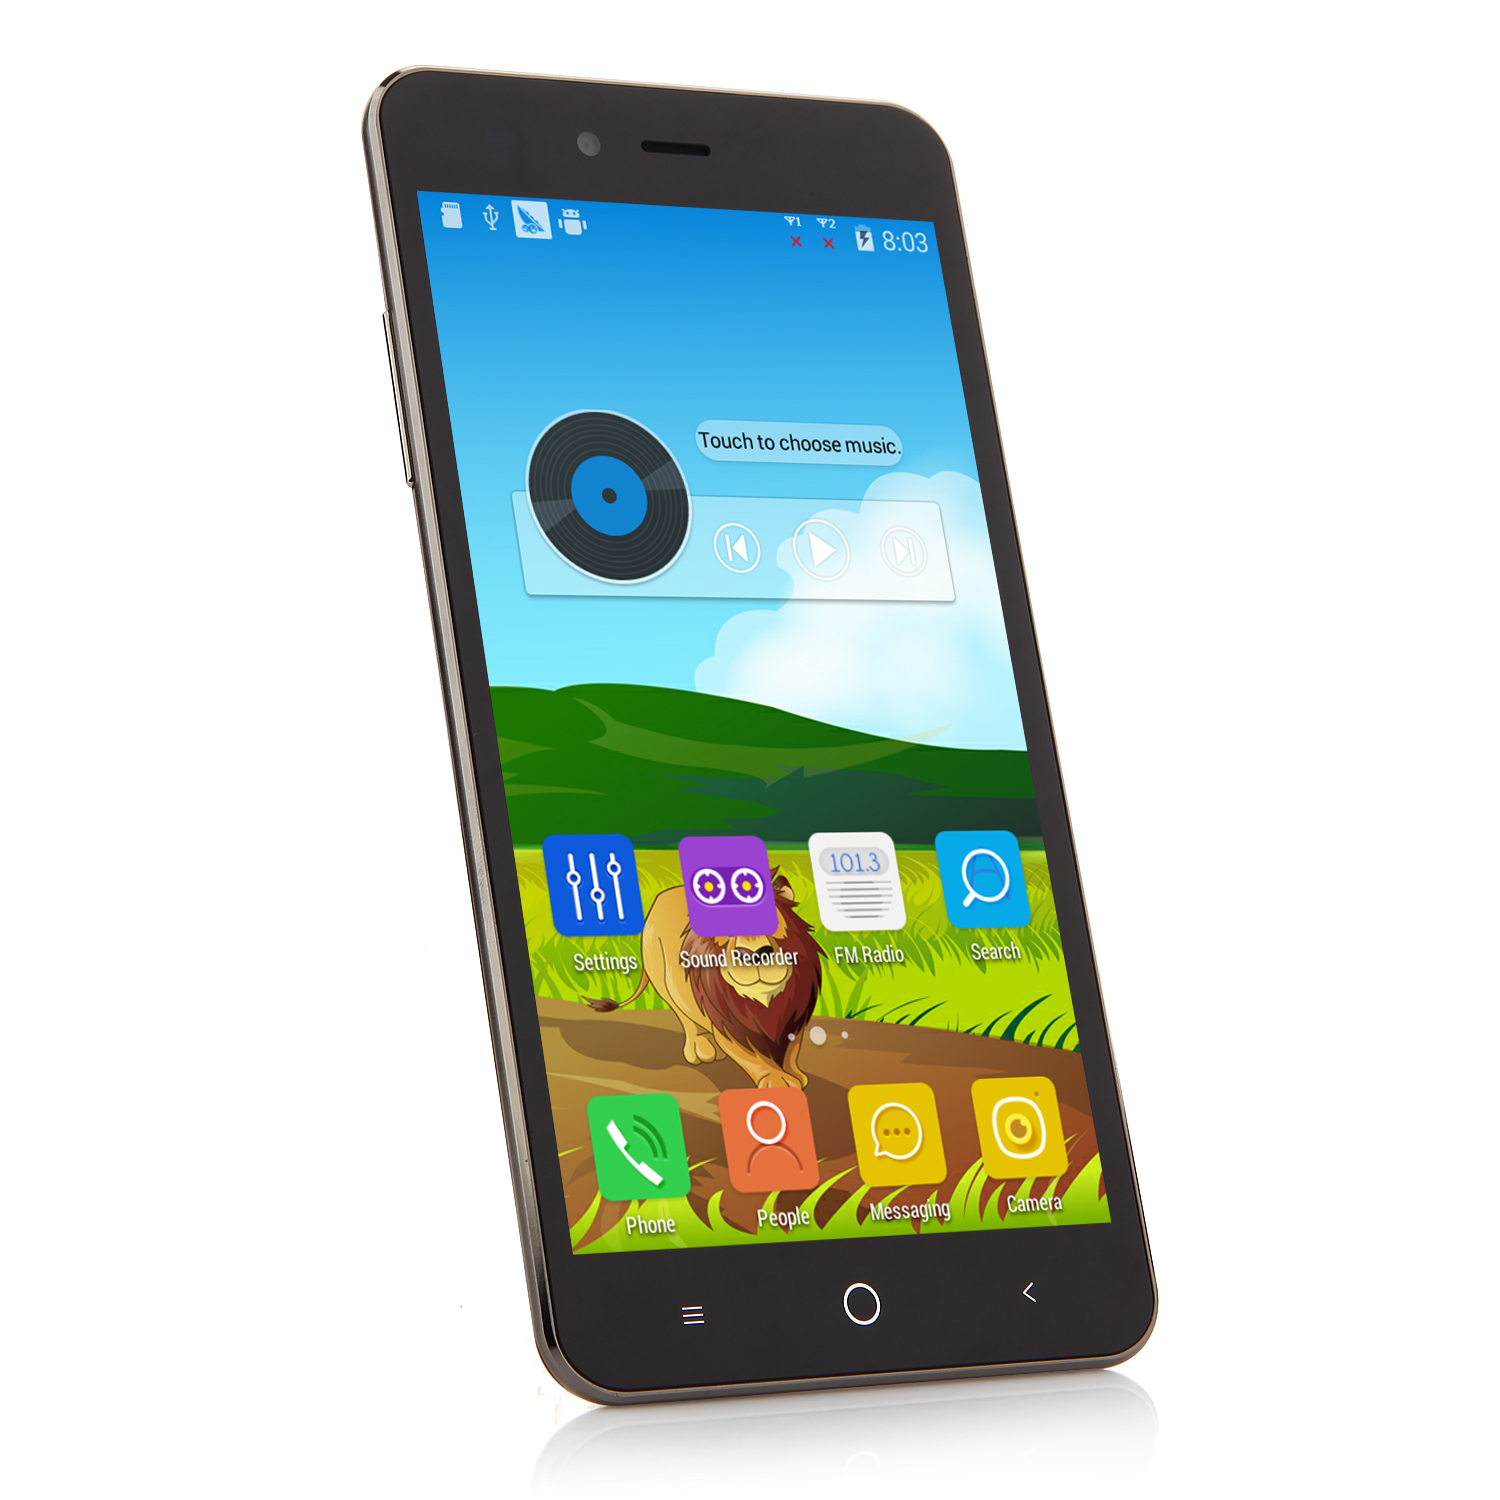 Tengda G710 Smartphone Android 4.4 MTK6572M Dual Core 5.5 Inch Smart Wake Gold